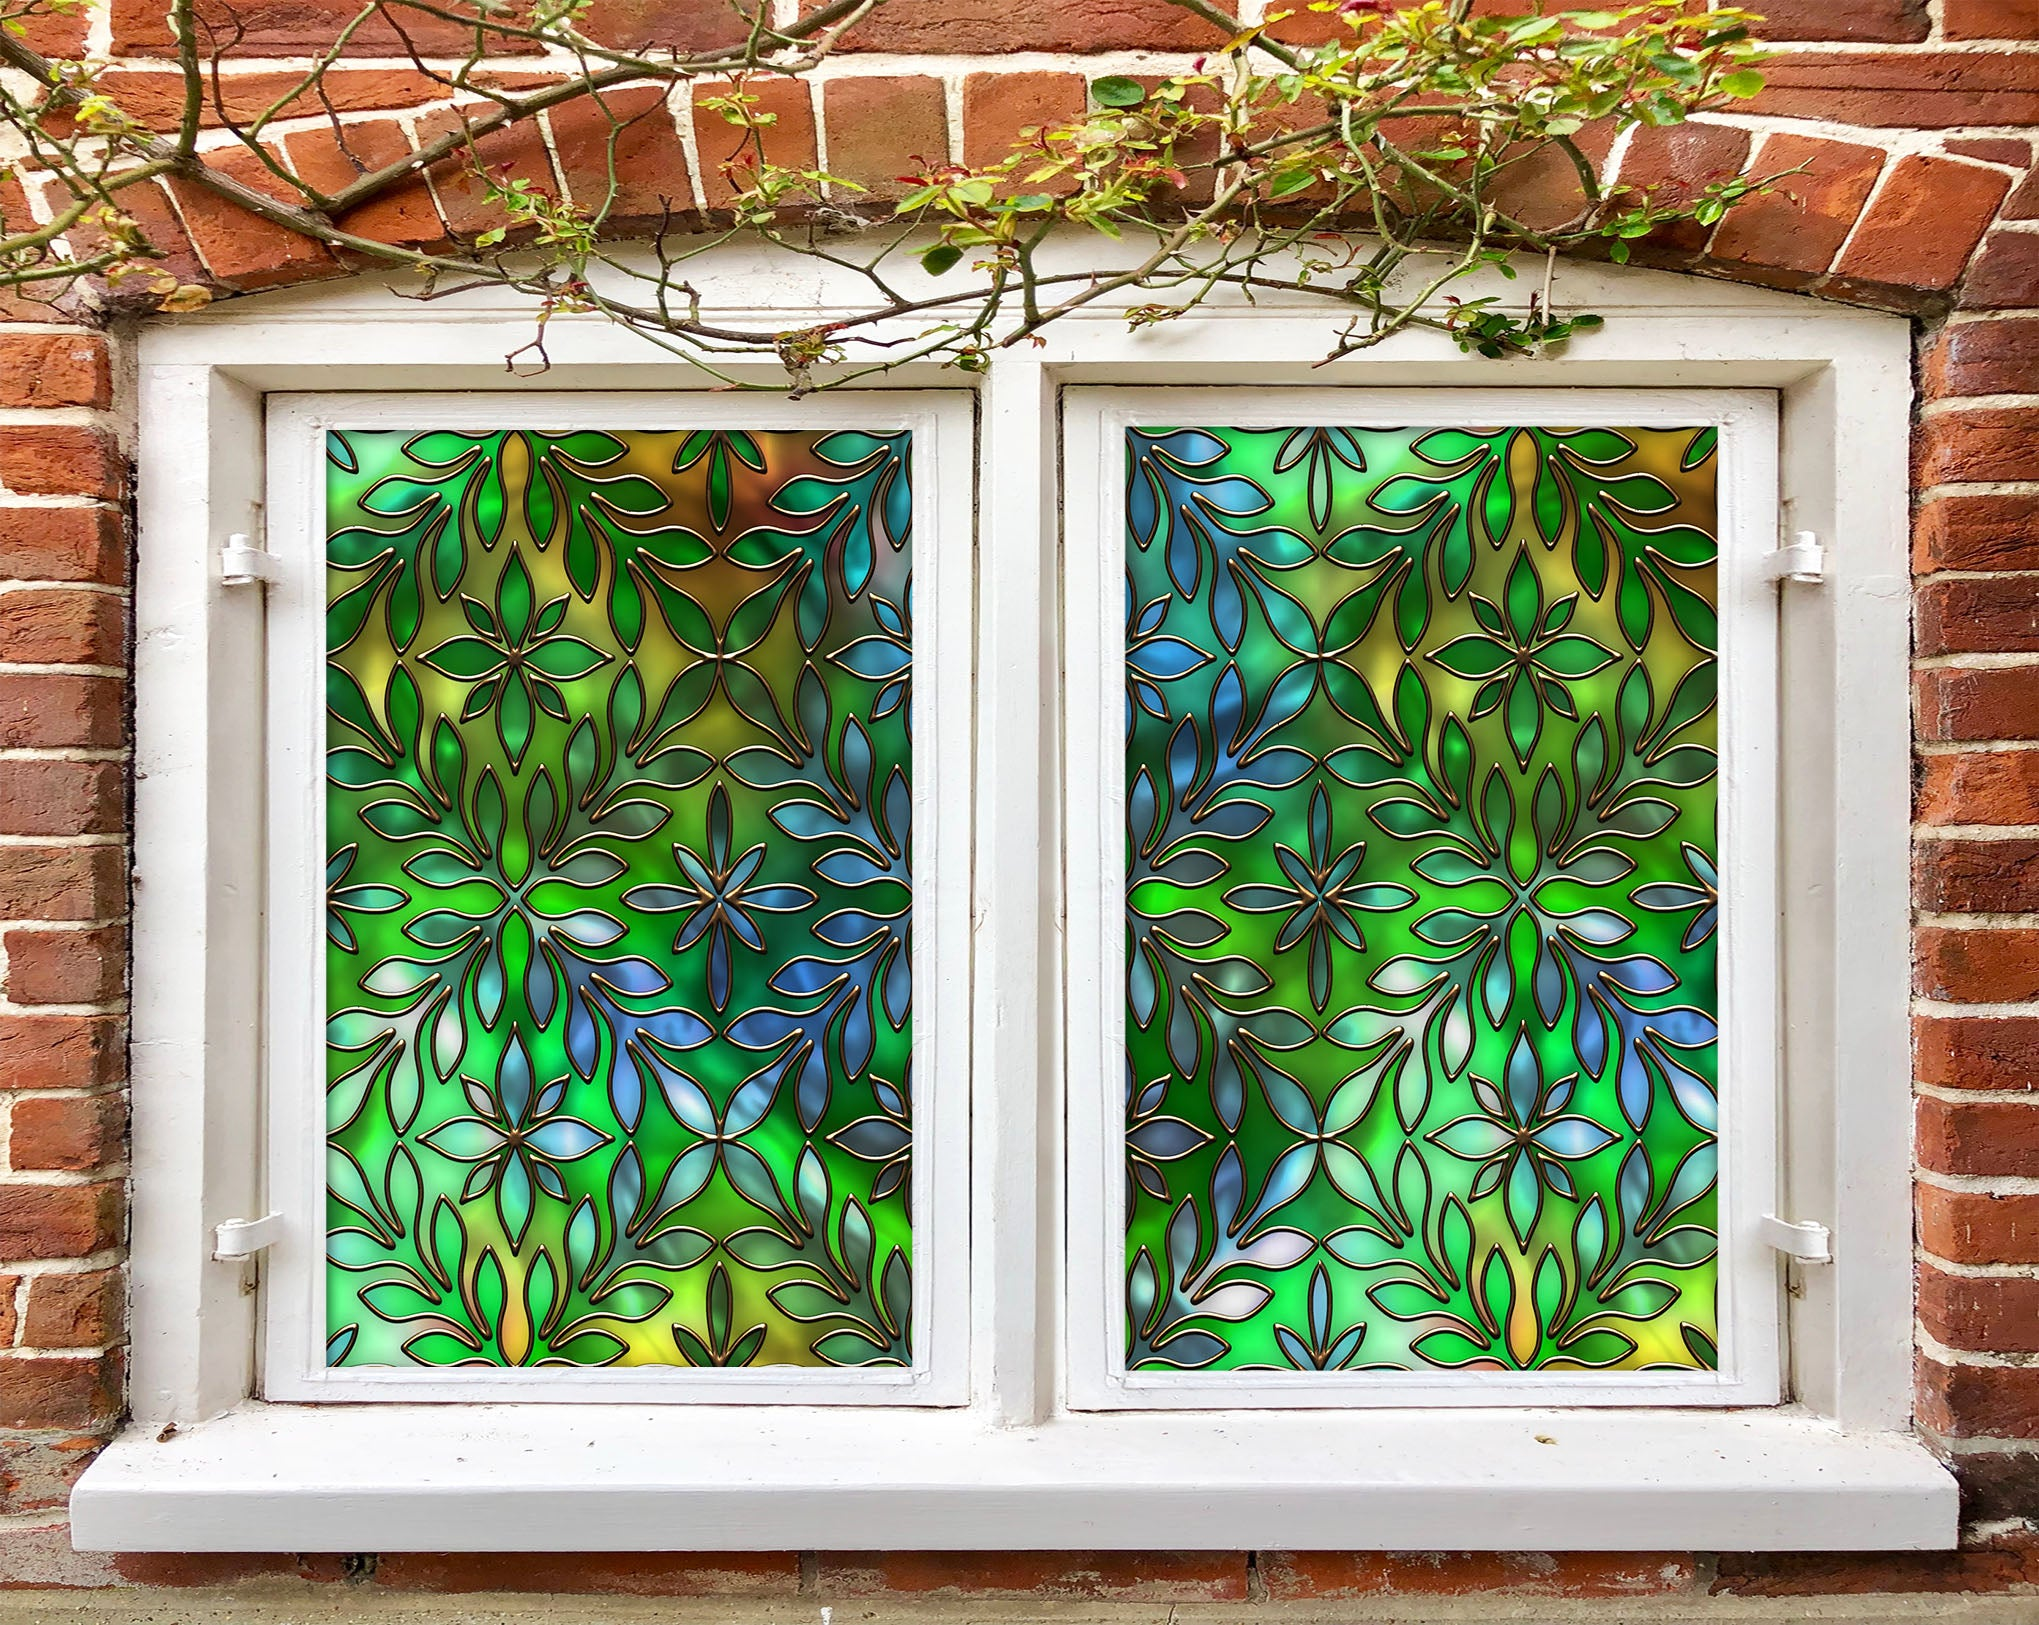 Details about  /3D Green Glass ZHUA213 Window Film Print Sticker Cling Stained Glass UV